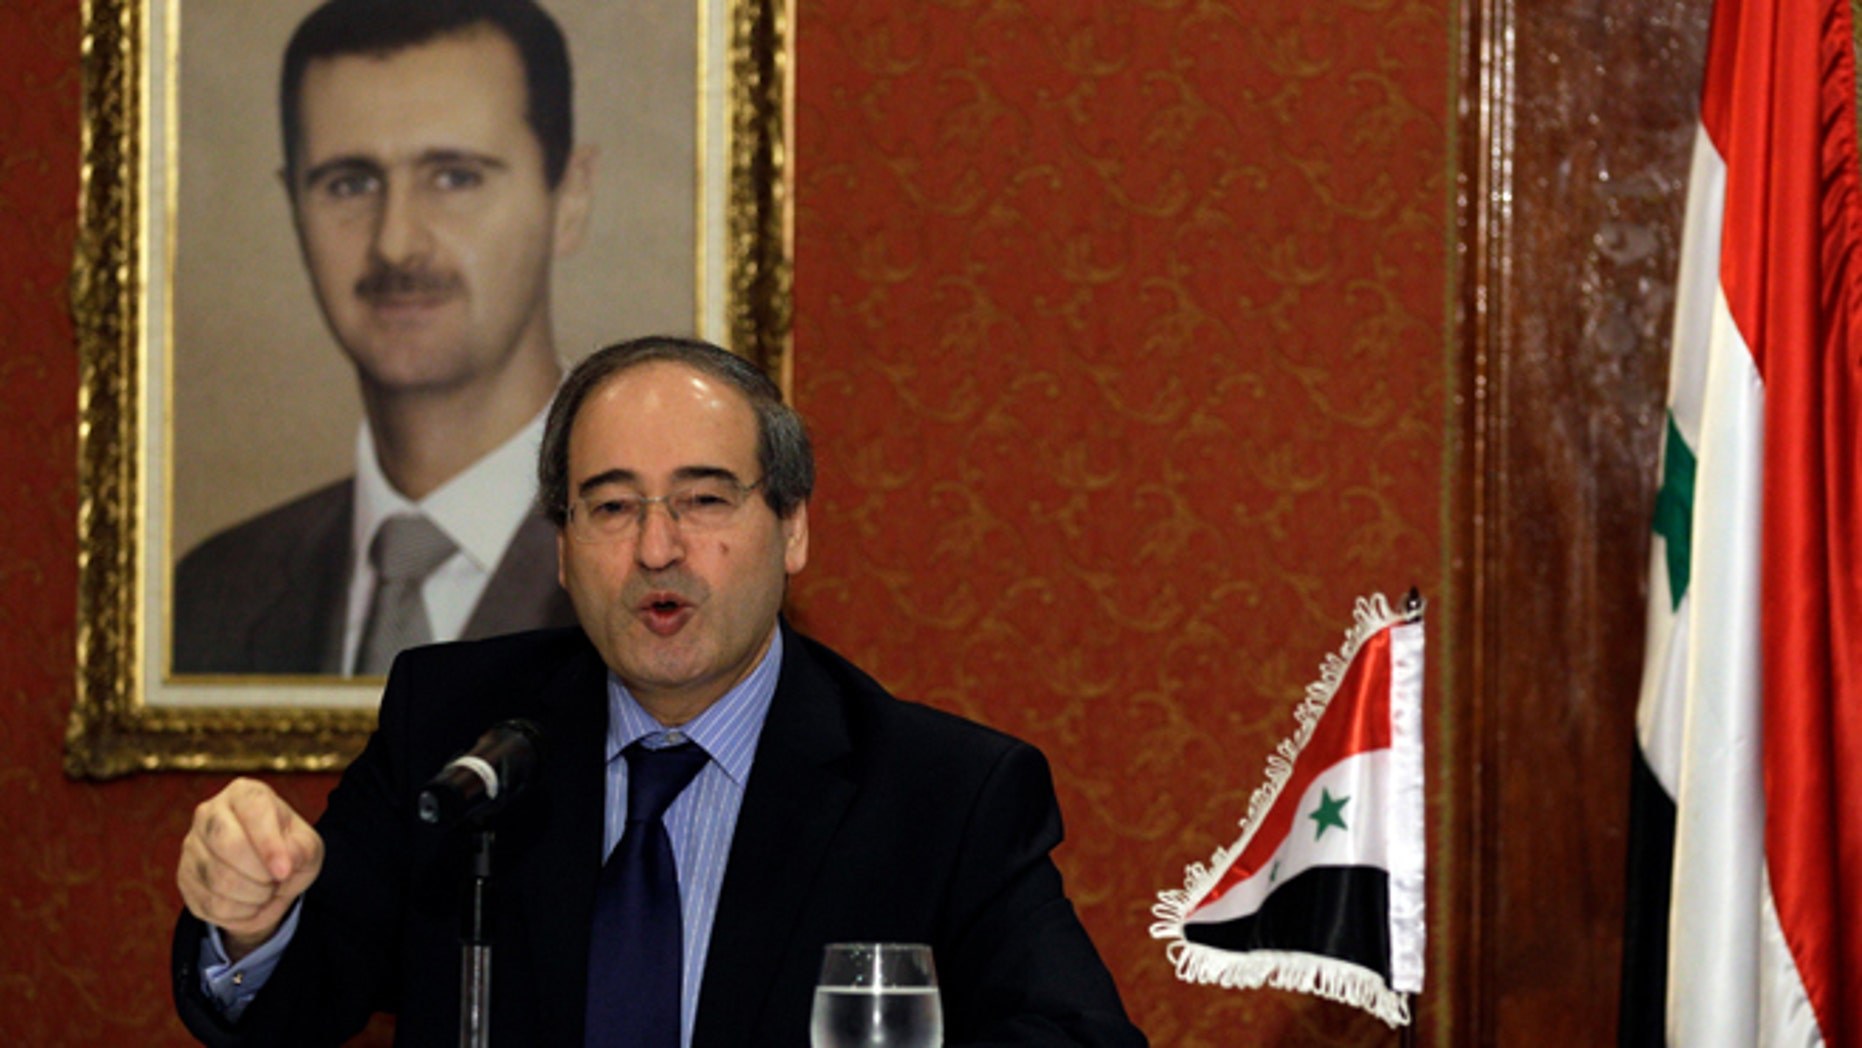 Backdropped by a framed picture of Syrian President Bashar al-Assad, Syria's Deputy Foreign Minister Faisal al-Mokdad speaks during a news conference at a local hotel in Caracas, Venezuela, Tuesday, Nov. 27, 2012. T(AP Photo/Fernando Llano)